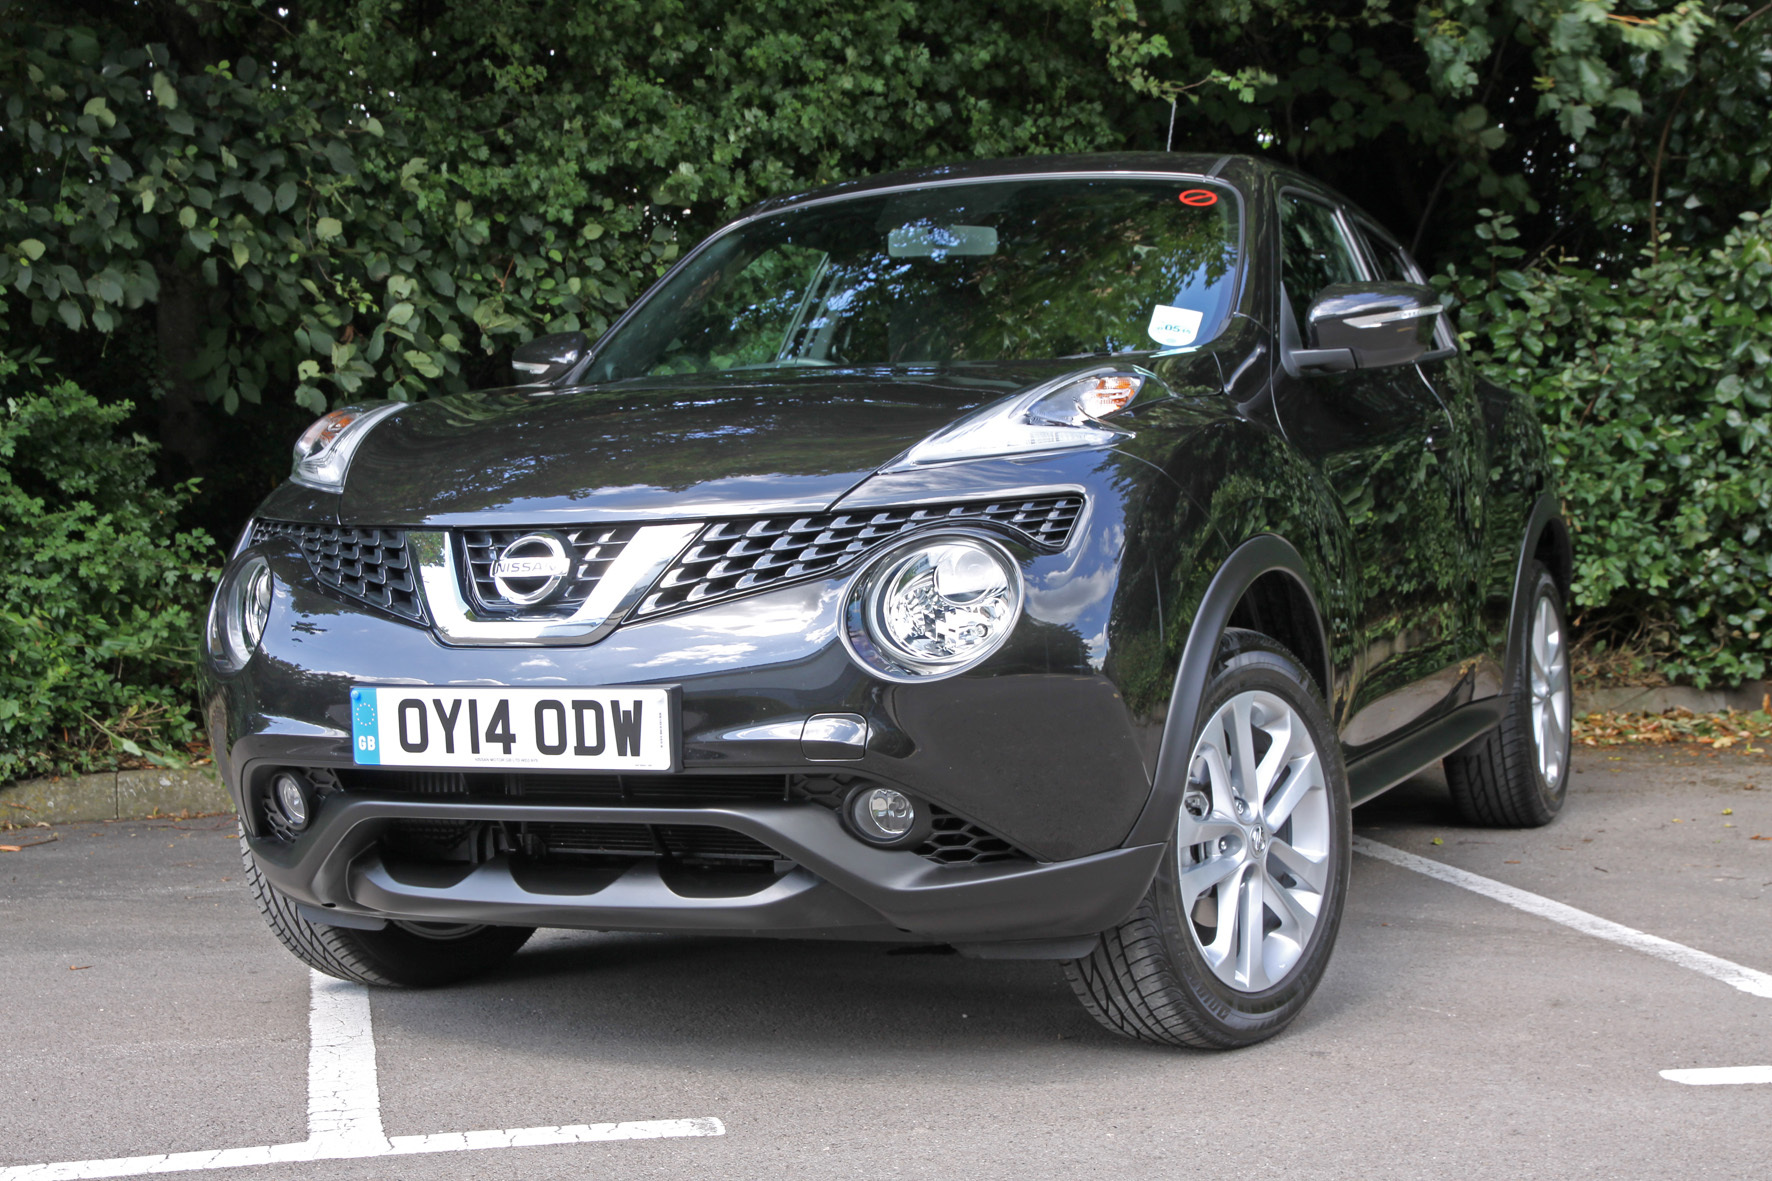 nissan juke 1 5 dci 110 from york press. Black Bedroom Furniture Sets. Home Design Ideas